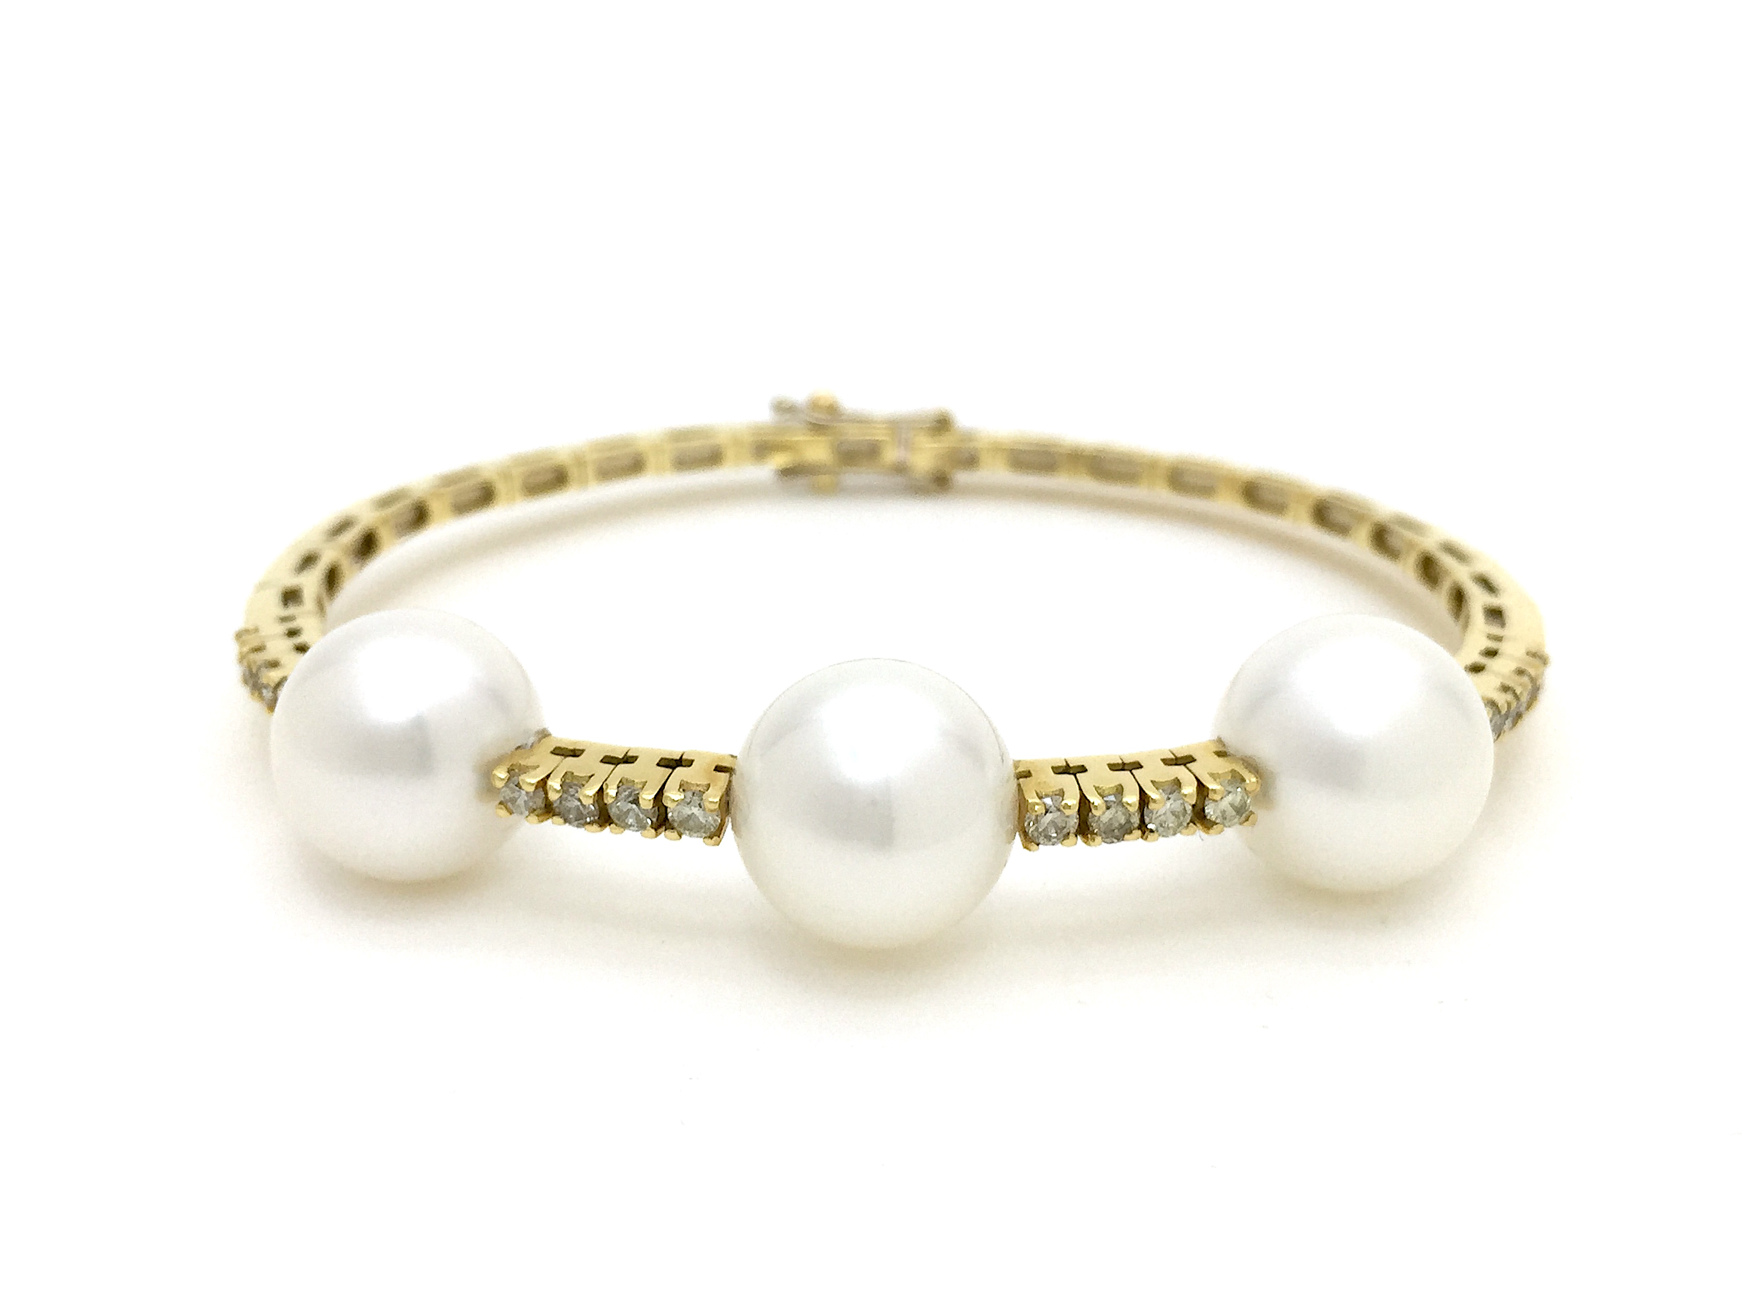 Sensi joyas jewellery Granada silver engagementDIAMONDS AND CULTURED PEARL BRACELET